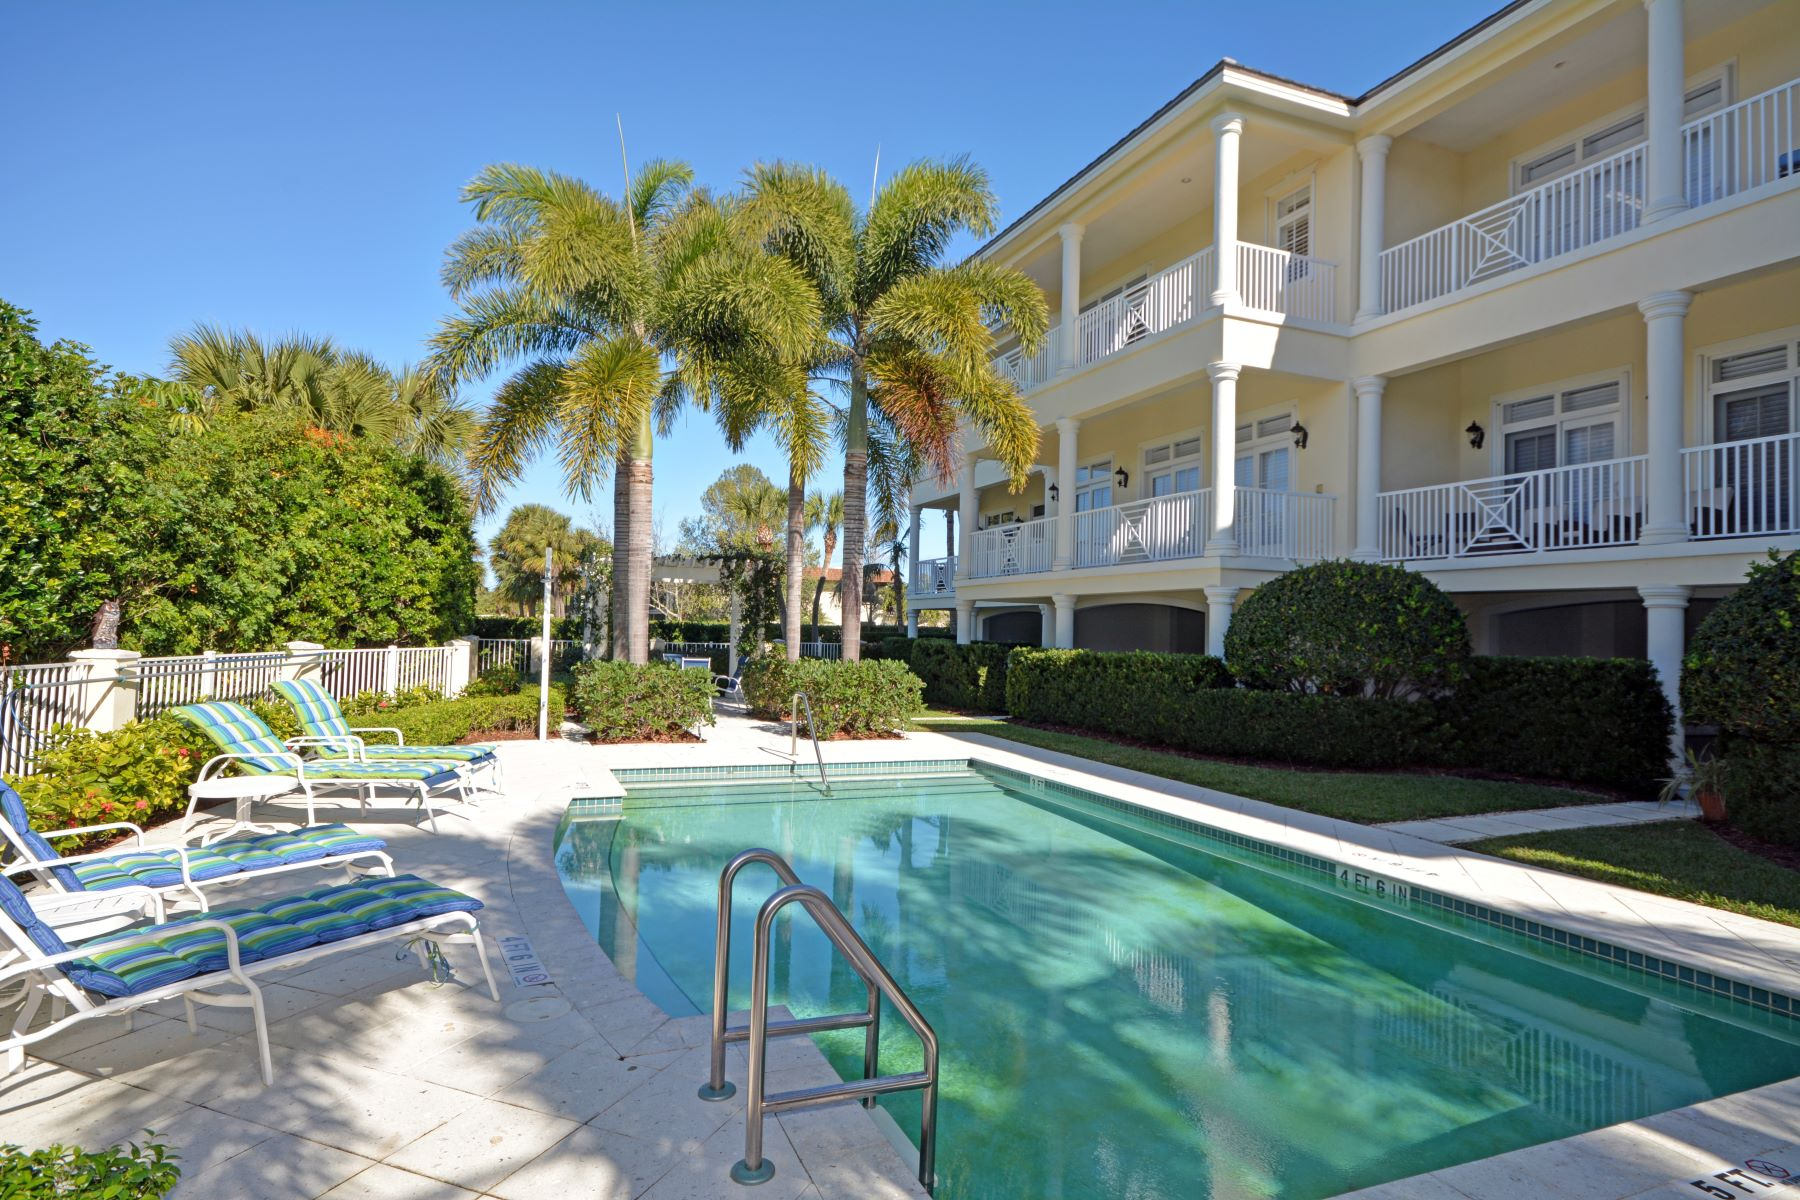 Additional photo for property listing at 4121 Silver Palm Drive Vero Beach, Florida 32963 United States